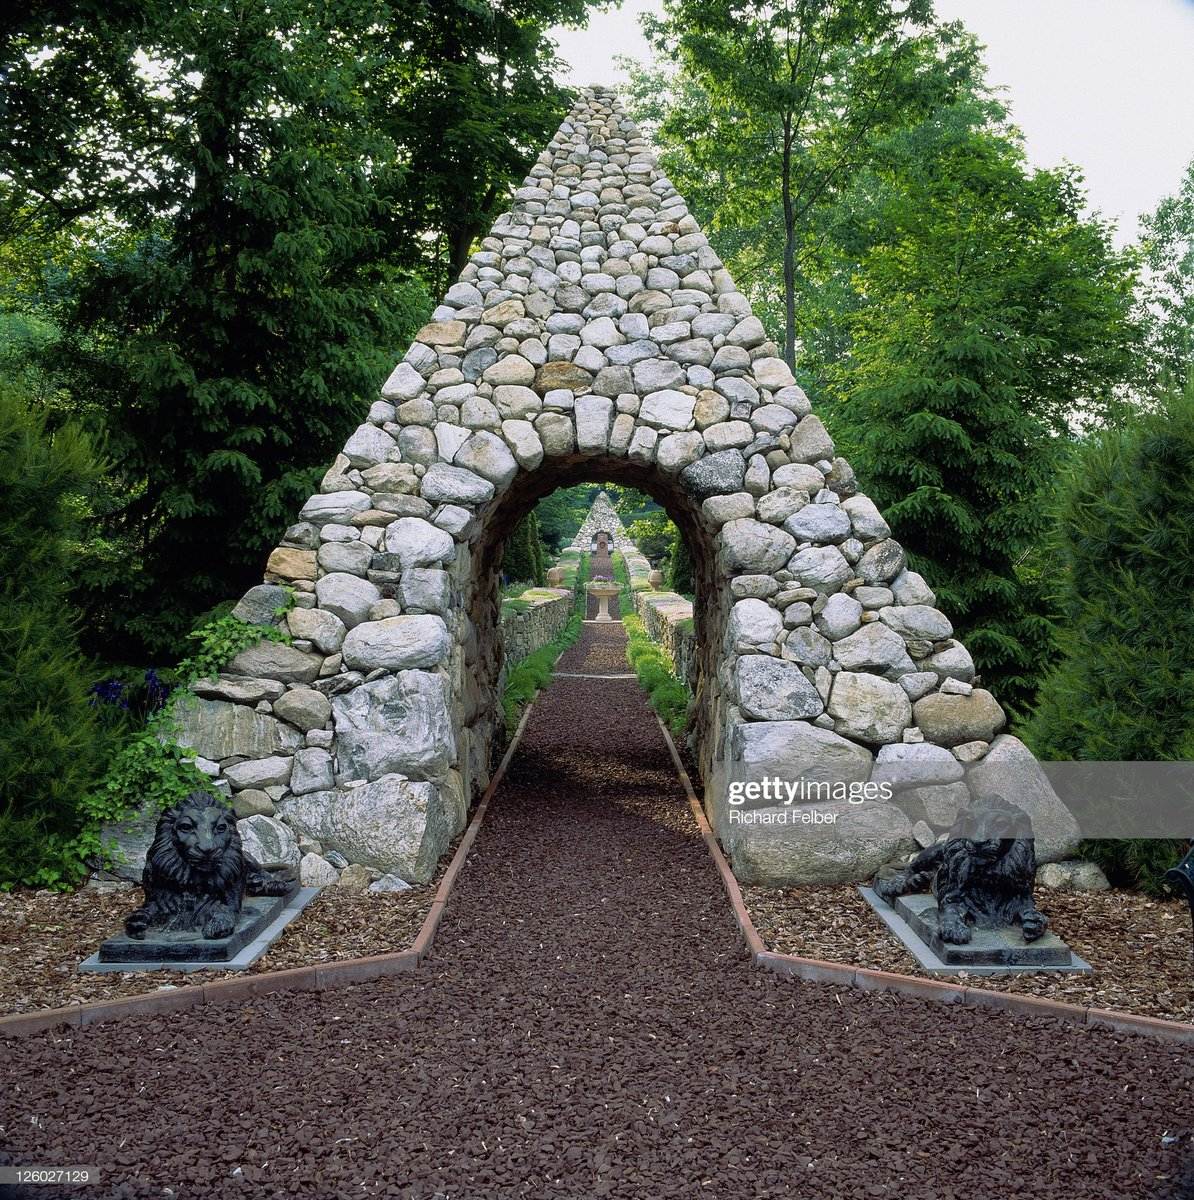 Jan Johnsen On Twitter Stone Pyramid Archway And Lion Sculptures